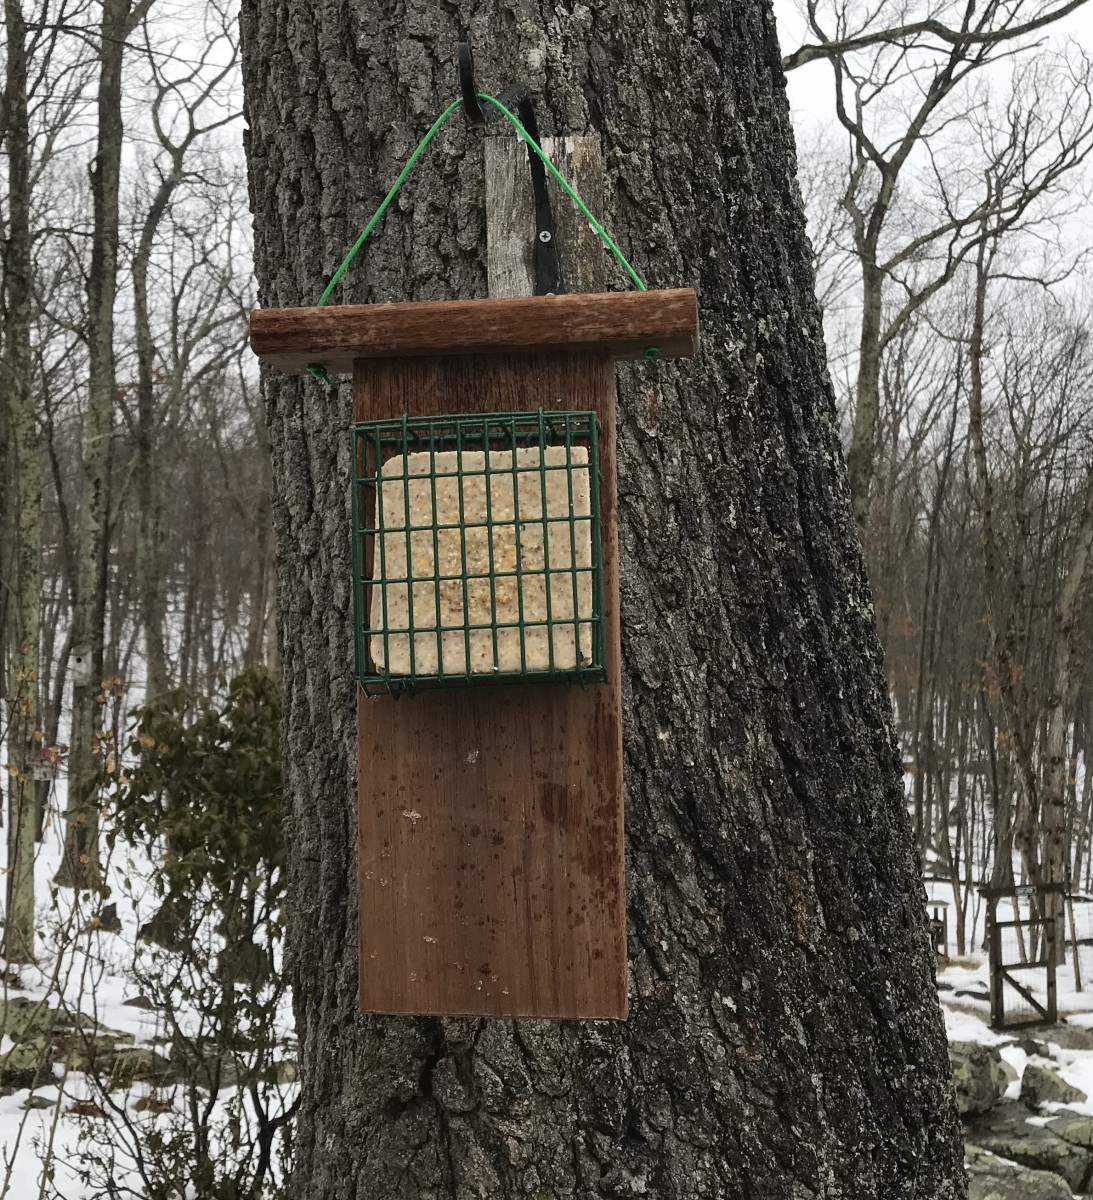 The finished suet feeder hangs in our yard. The extended tail prop makes it easy for woodpeckers to balance while feasting on suet cakes.